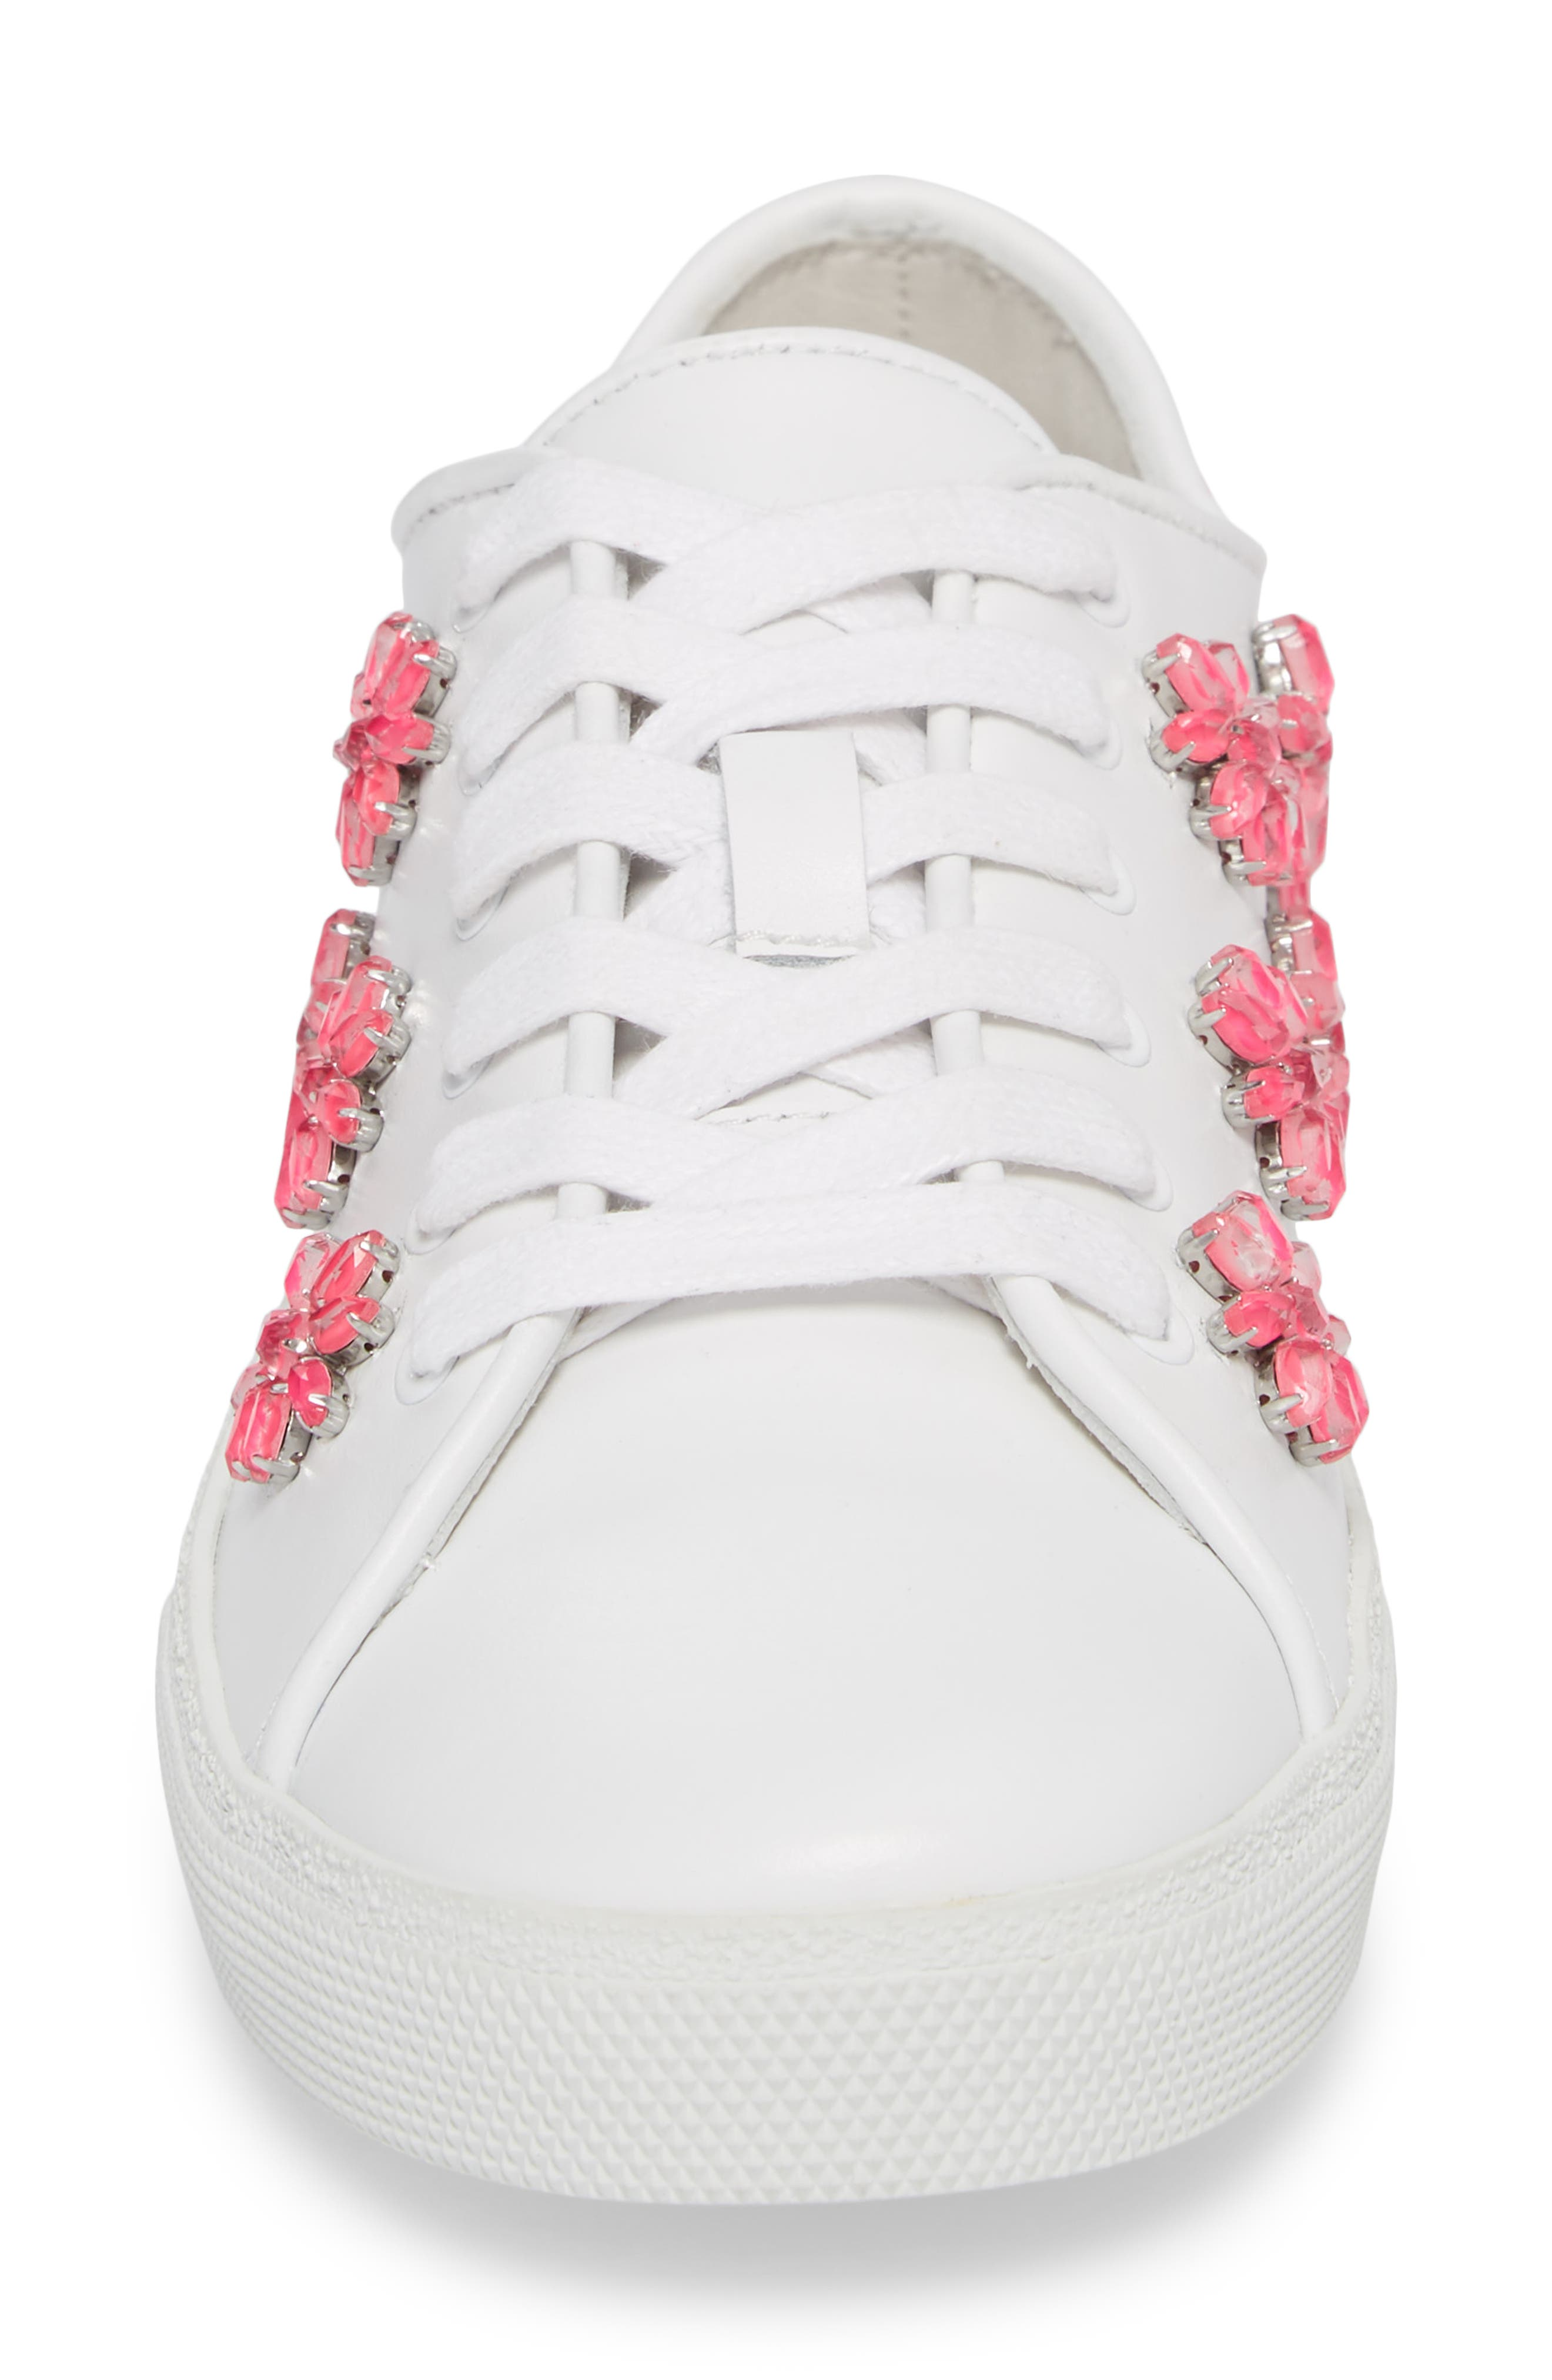 Cleo Crystal Embellished Sneaker,                             Alternate thumbnail 4, color,                             PURE WHITE